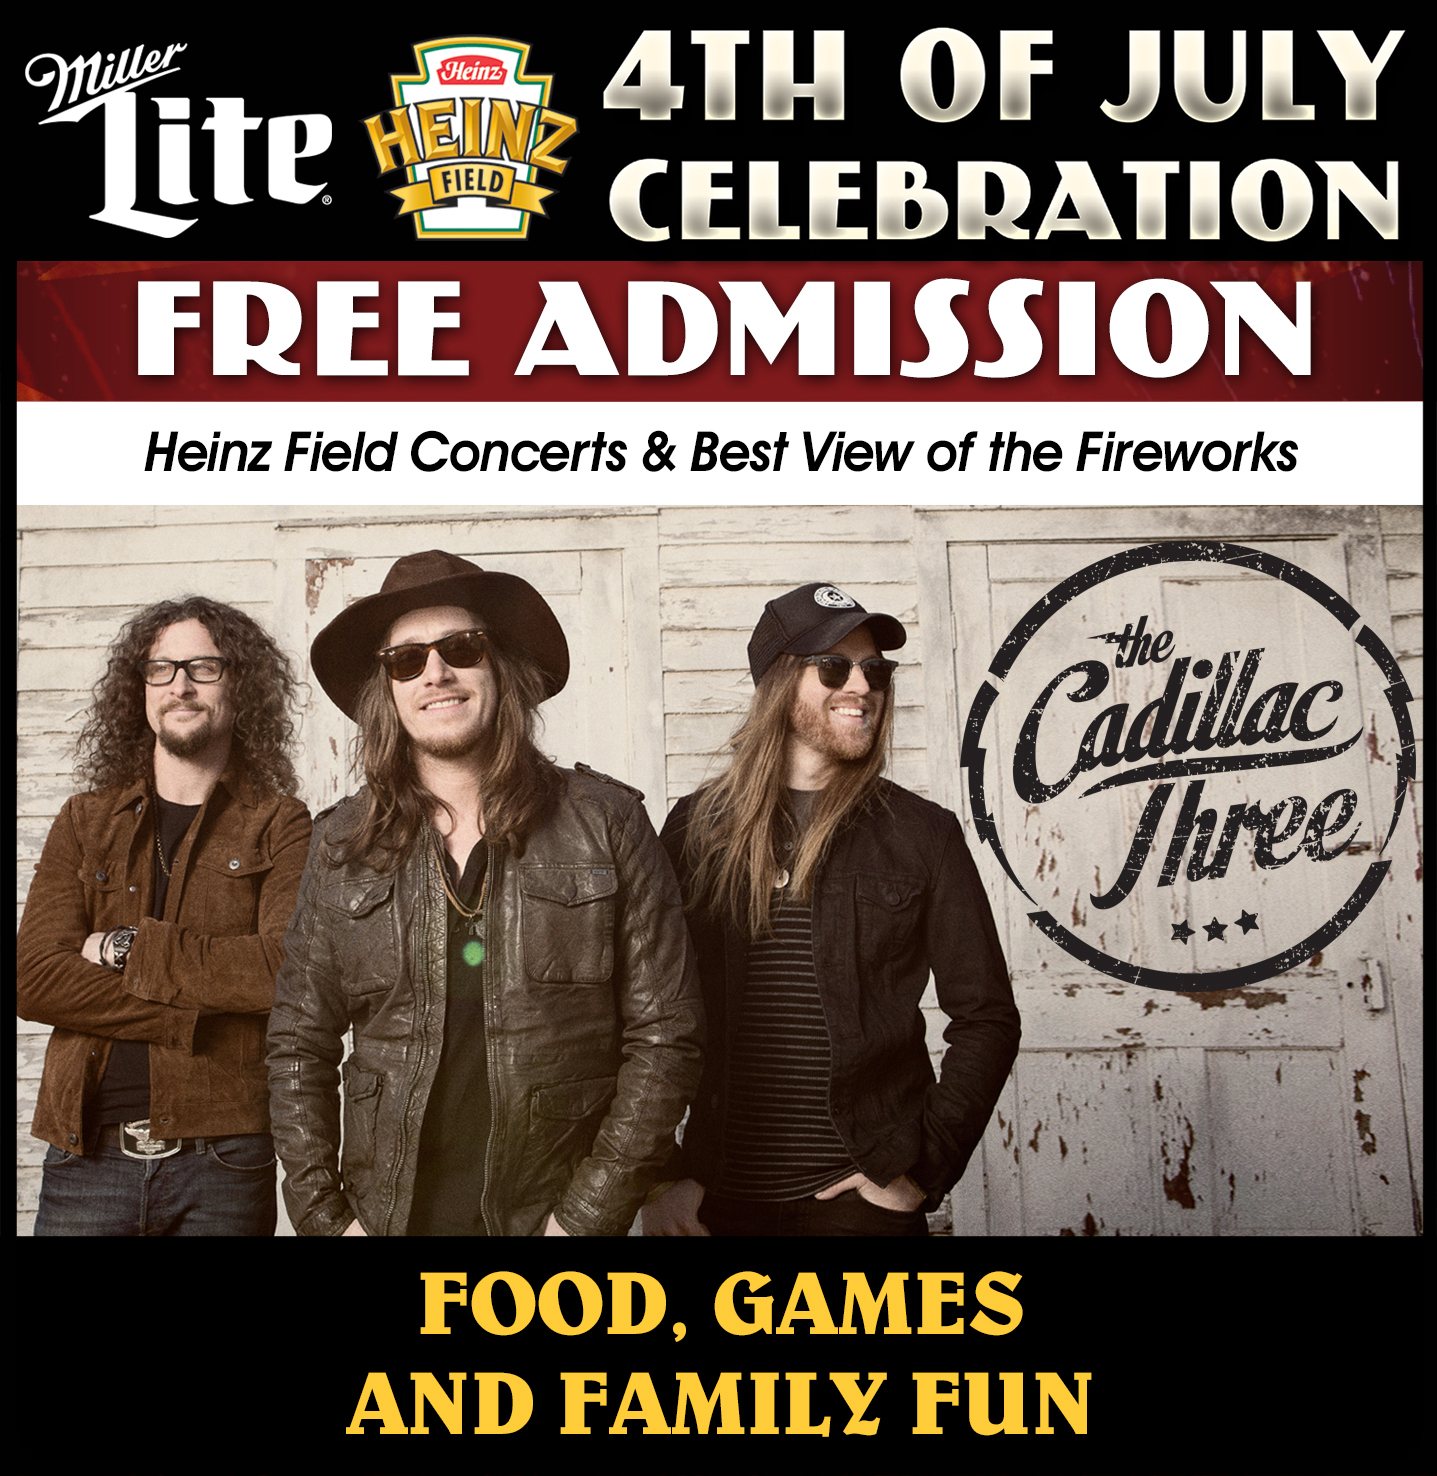 2017 4thOfJulyCelebration The Cadillac Three to Play Heinz Field 4th of July Celebration